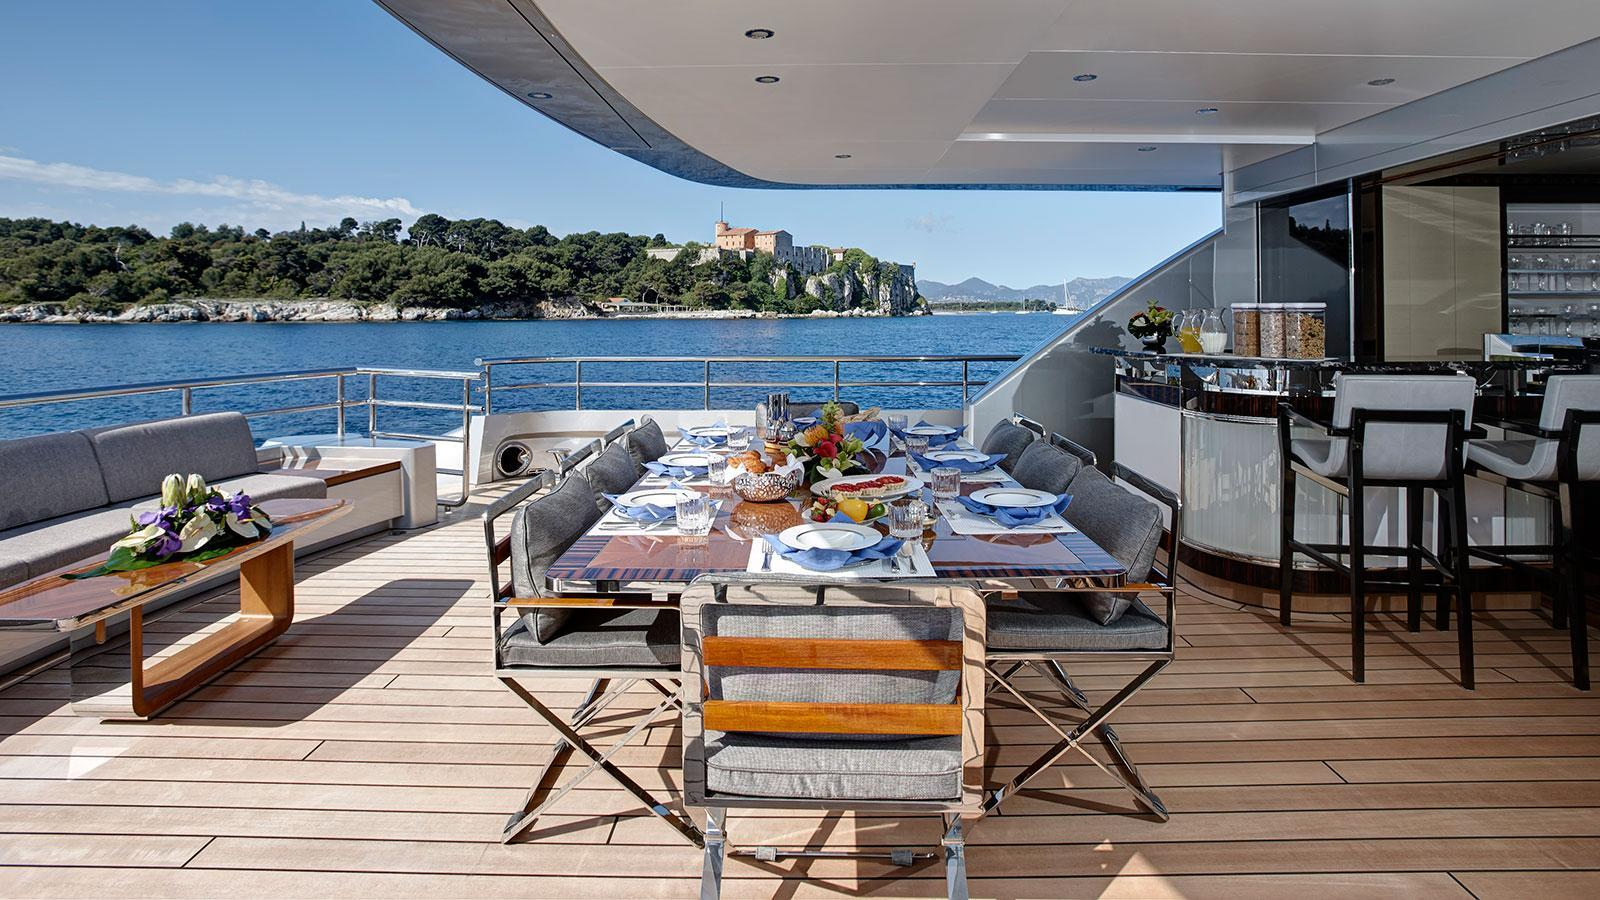 lady-may-motor-yacht-feadship-46m-2014-covered-deck